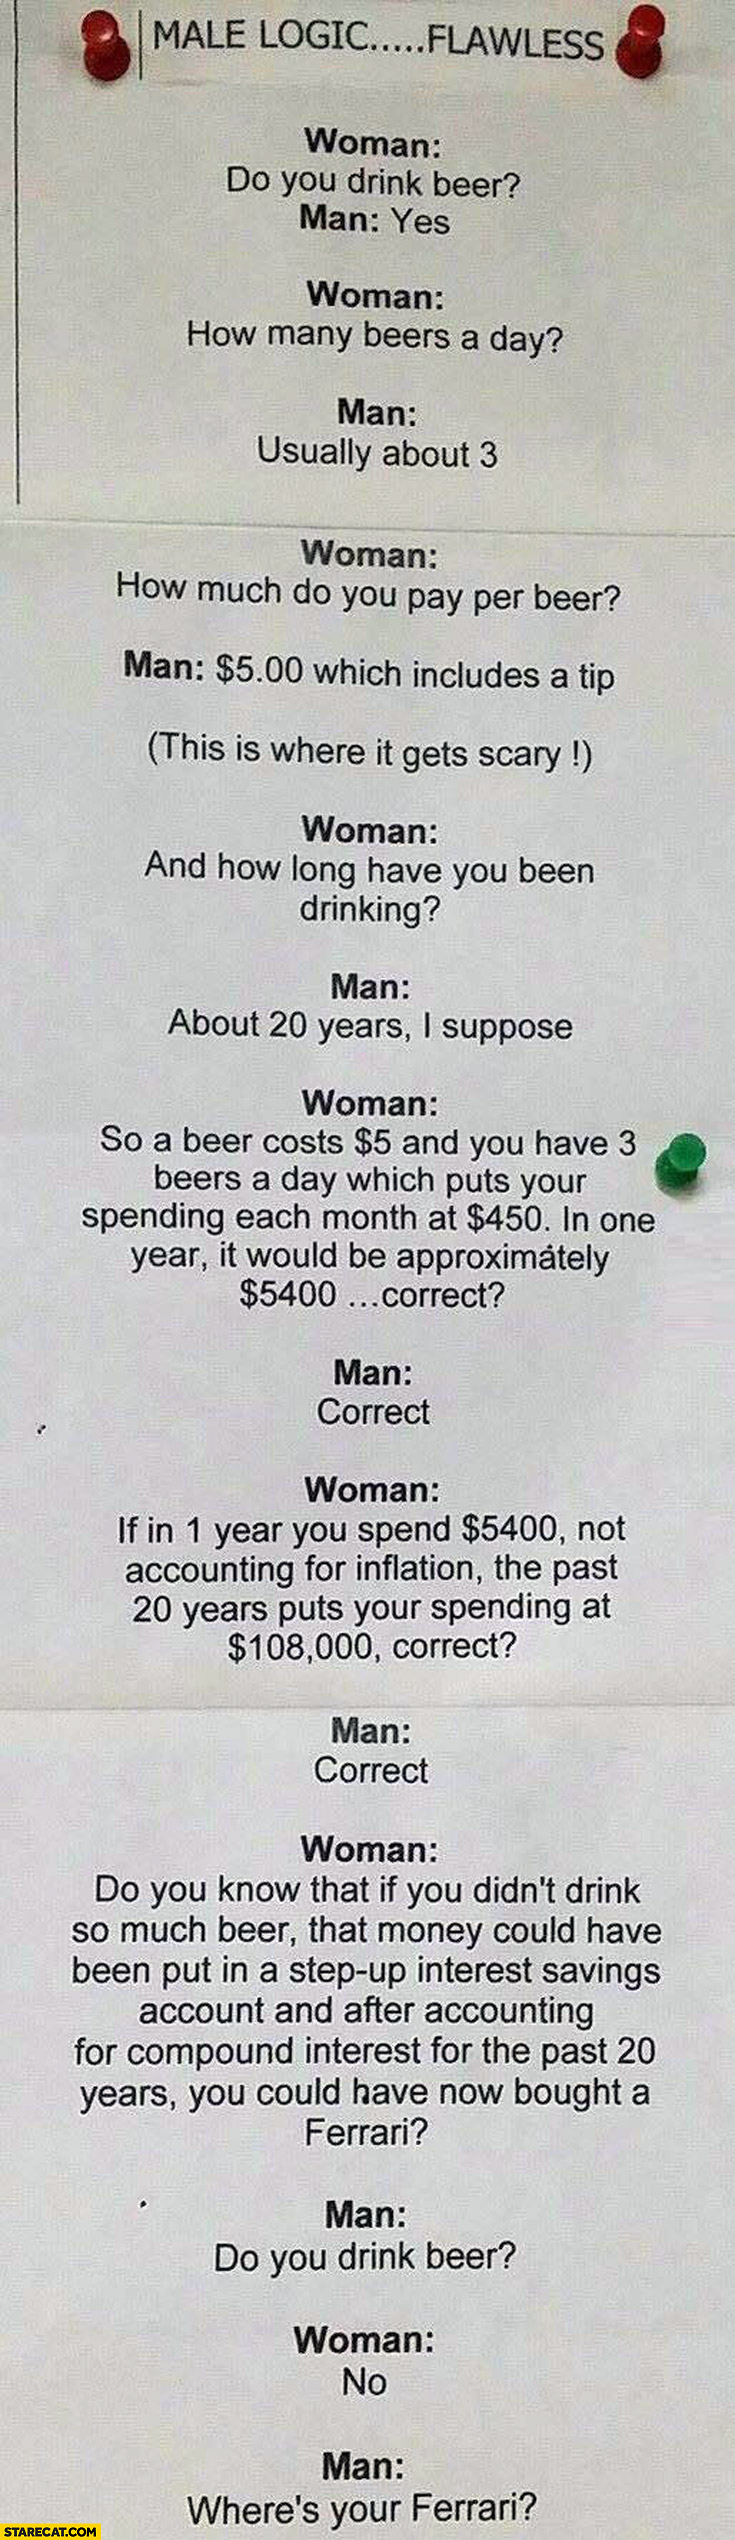 Male logic total cost of beer. Where's your Ferrari?